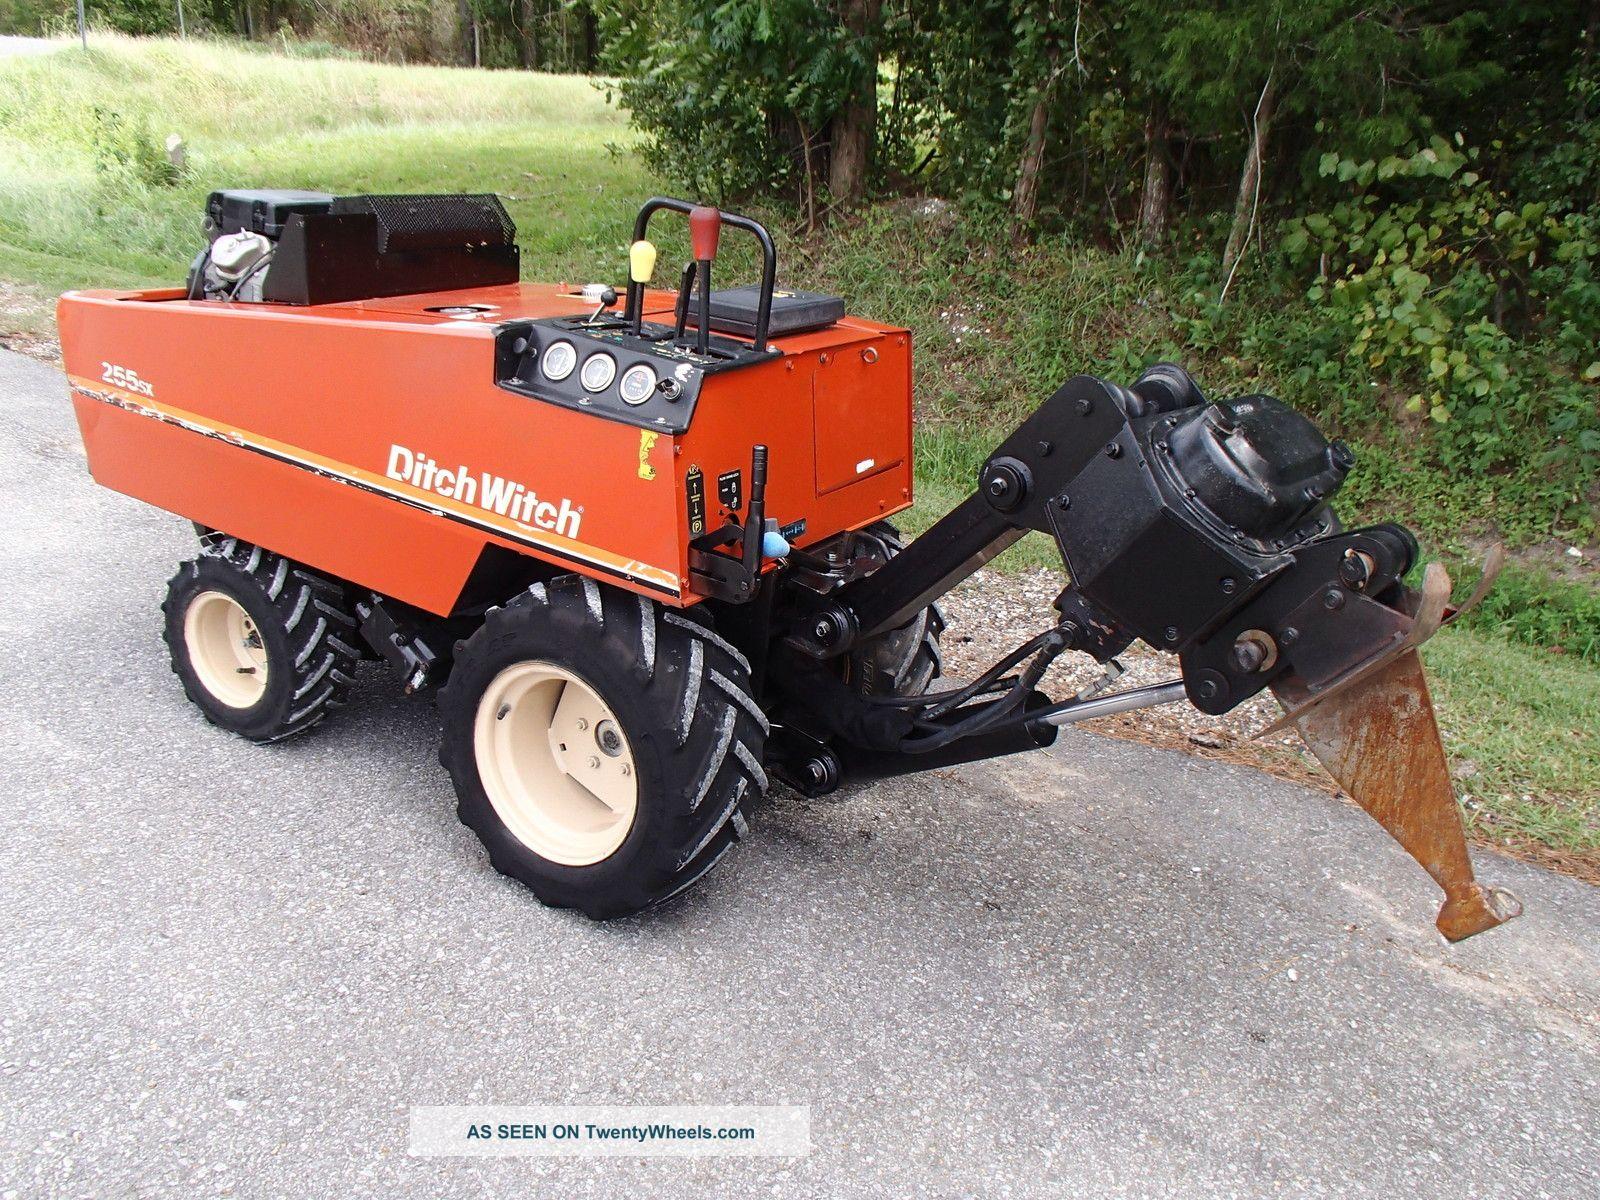 2000 ditch witch 255sx cable plow honda gas engine vermeer case rh twentywheels com Ditch Witch Rental Ditch Witch Com